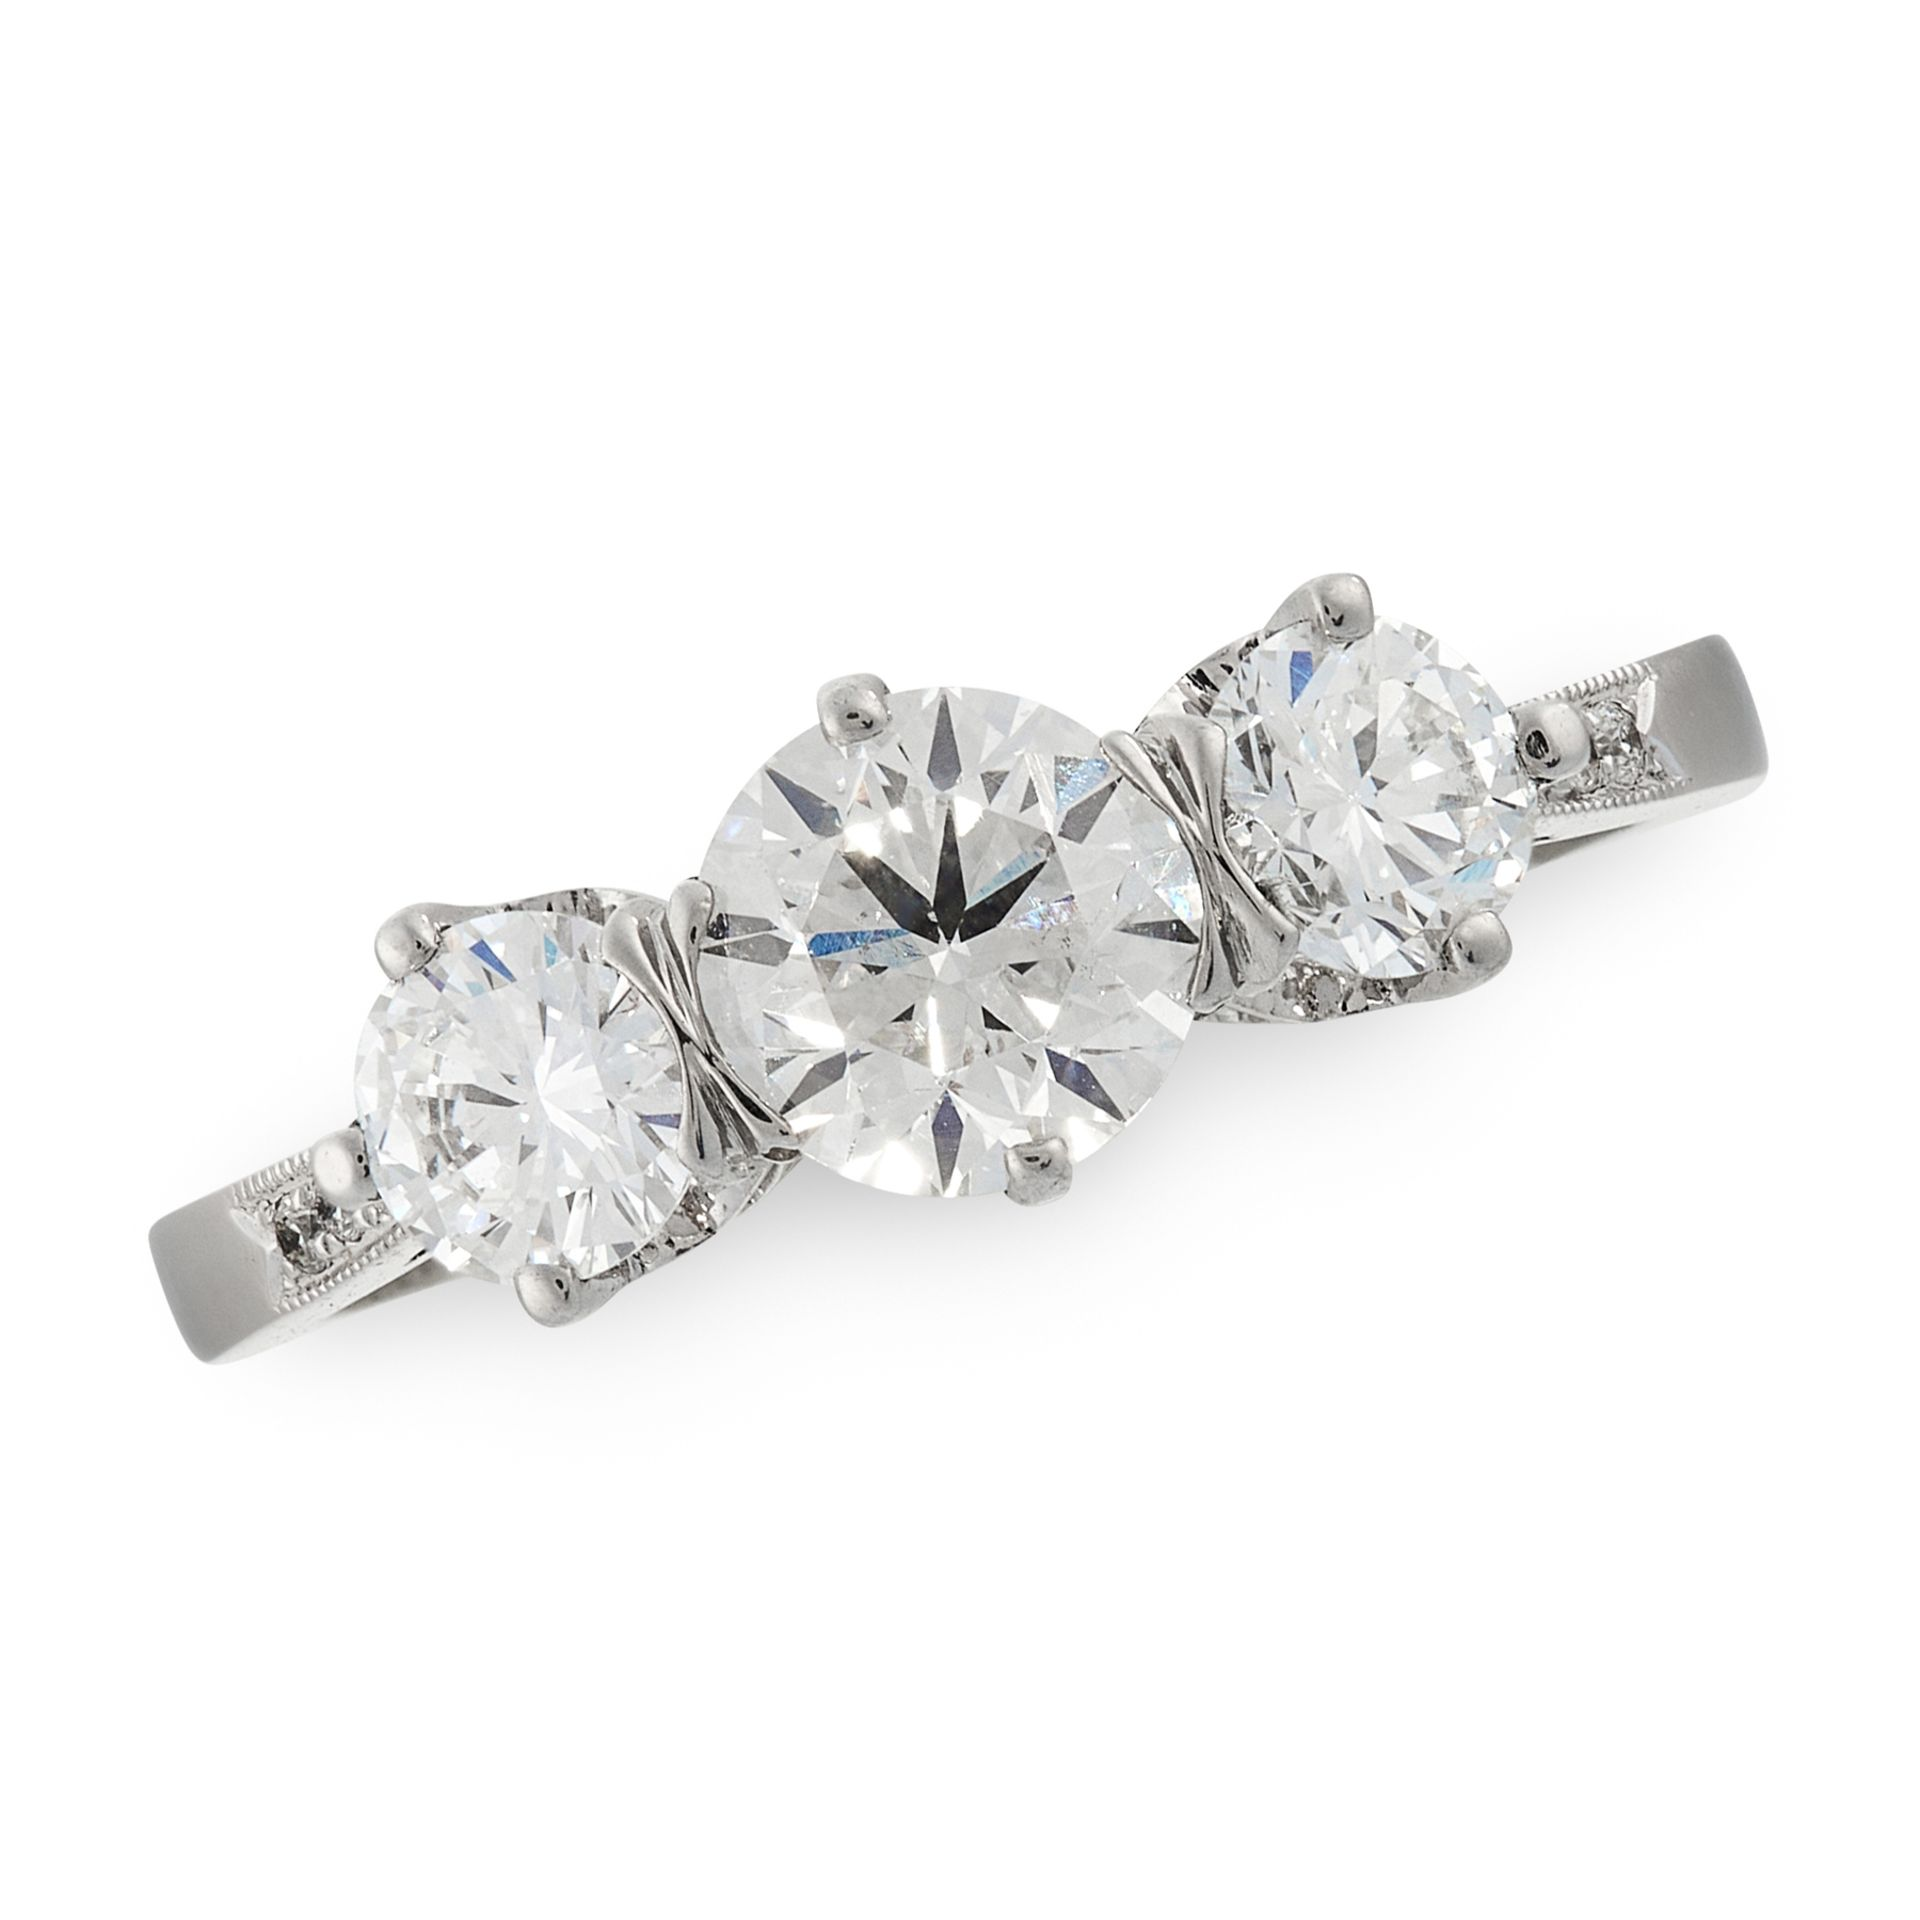 A DIAMOND THREE STONE RING in platinum, set with a trio of graduated round cut diamonds totalling